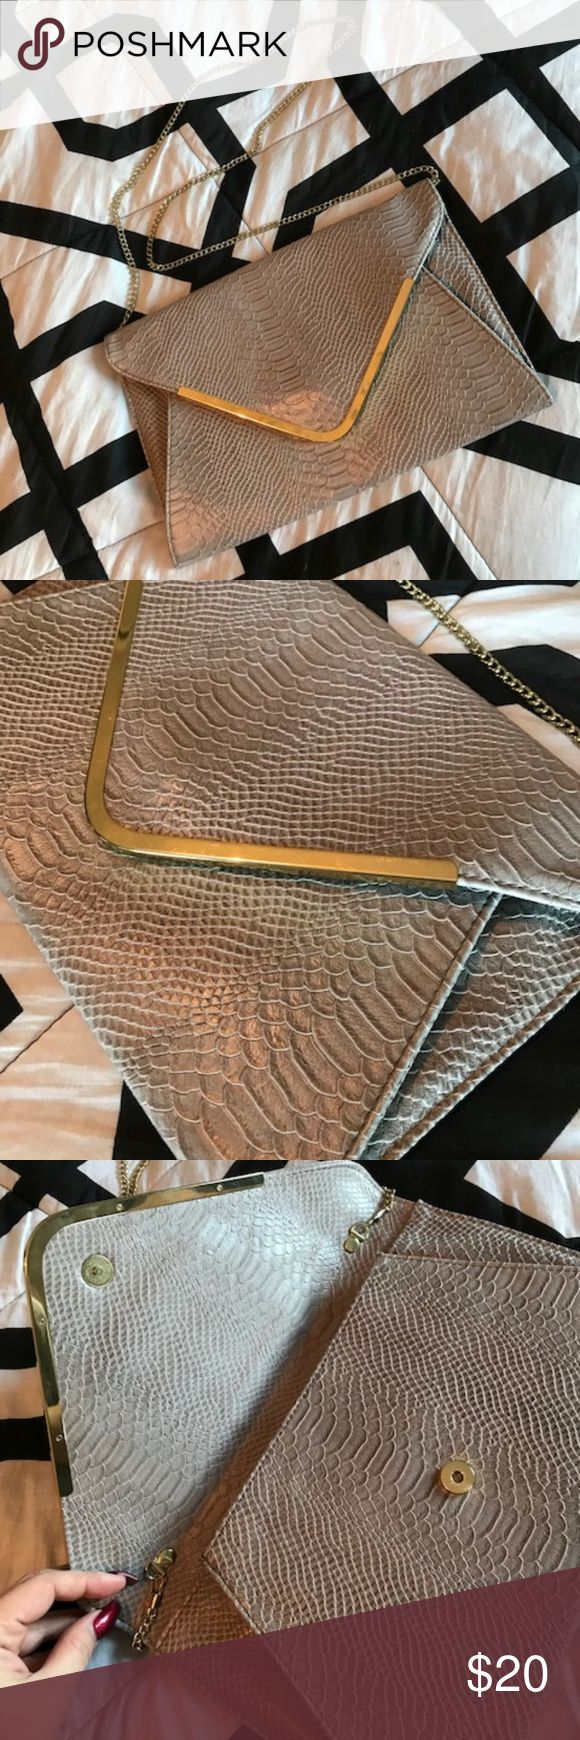 "Steve Madden grey faux snake skin clutch crossbody HOT! Steve Madden grey faux snake skin clutch sheens slightly purple in the sun.  Gold toned hardware and removal chain to go from shoulder purse/crossbody to clutch.  EXCELLENT condition, no blemishes! Interior is clean and has two pouches on one side and zipper compartment on the other.  Back has Steve Madden gold toned plate.  Snap closure. Smoke Free/Pet Free. 14"" length 9"" height .25 inches width 22"" shoulder drop  Offers Are Welcomed…"